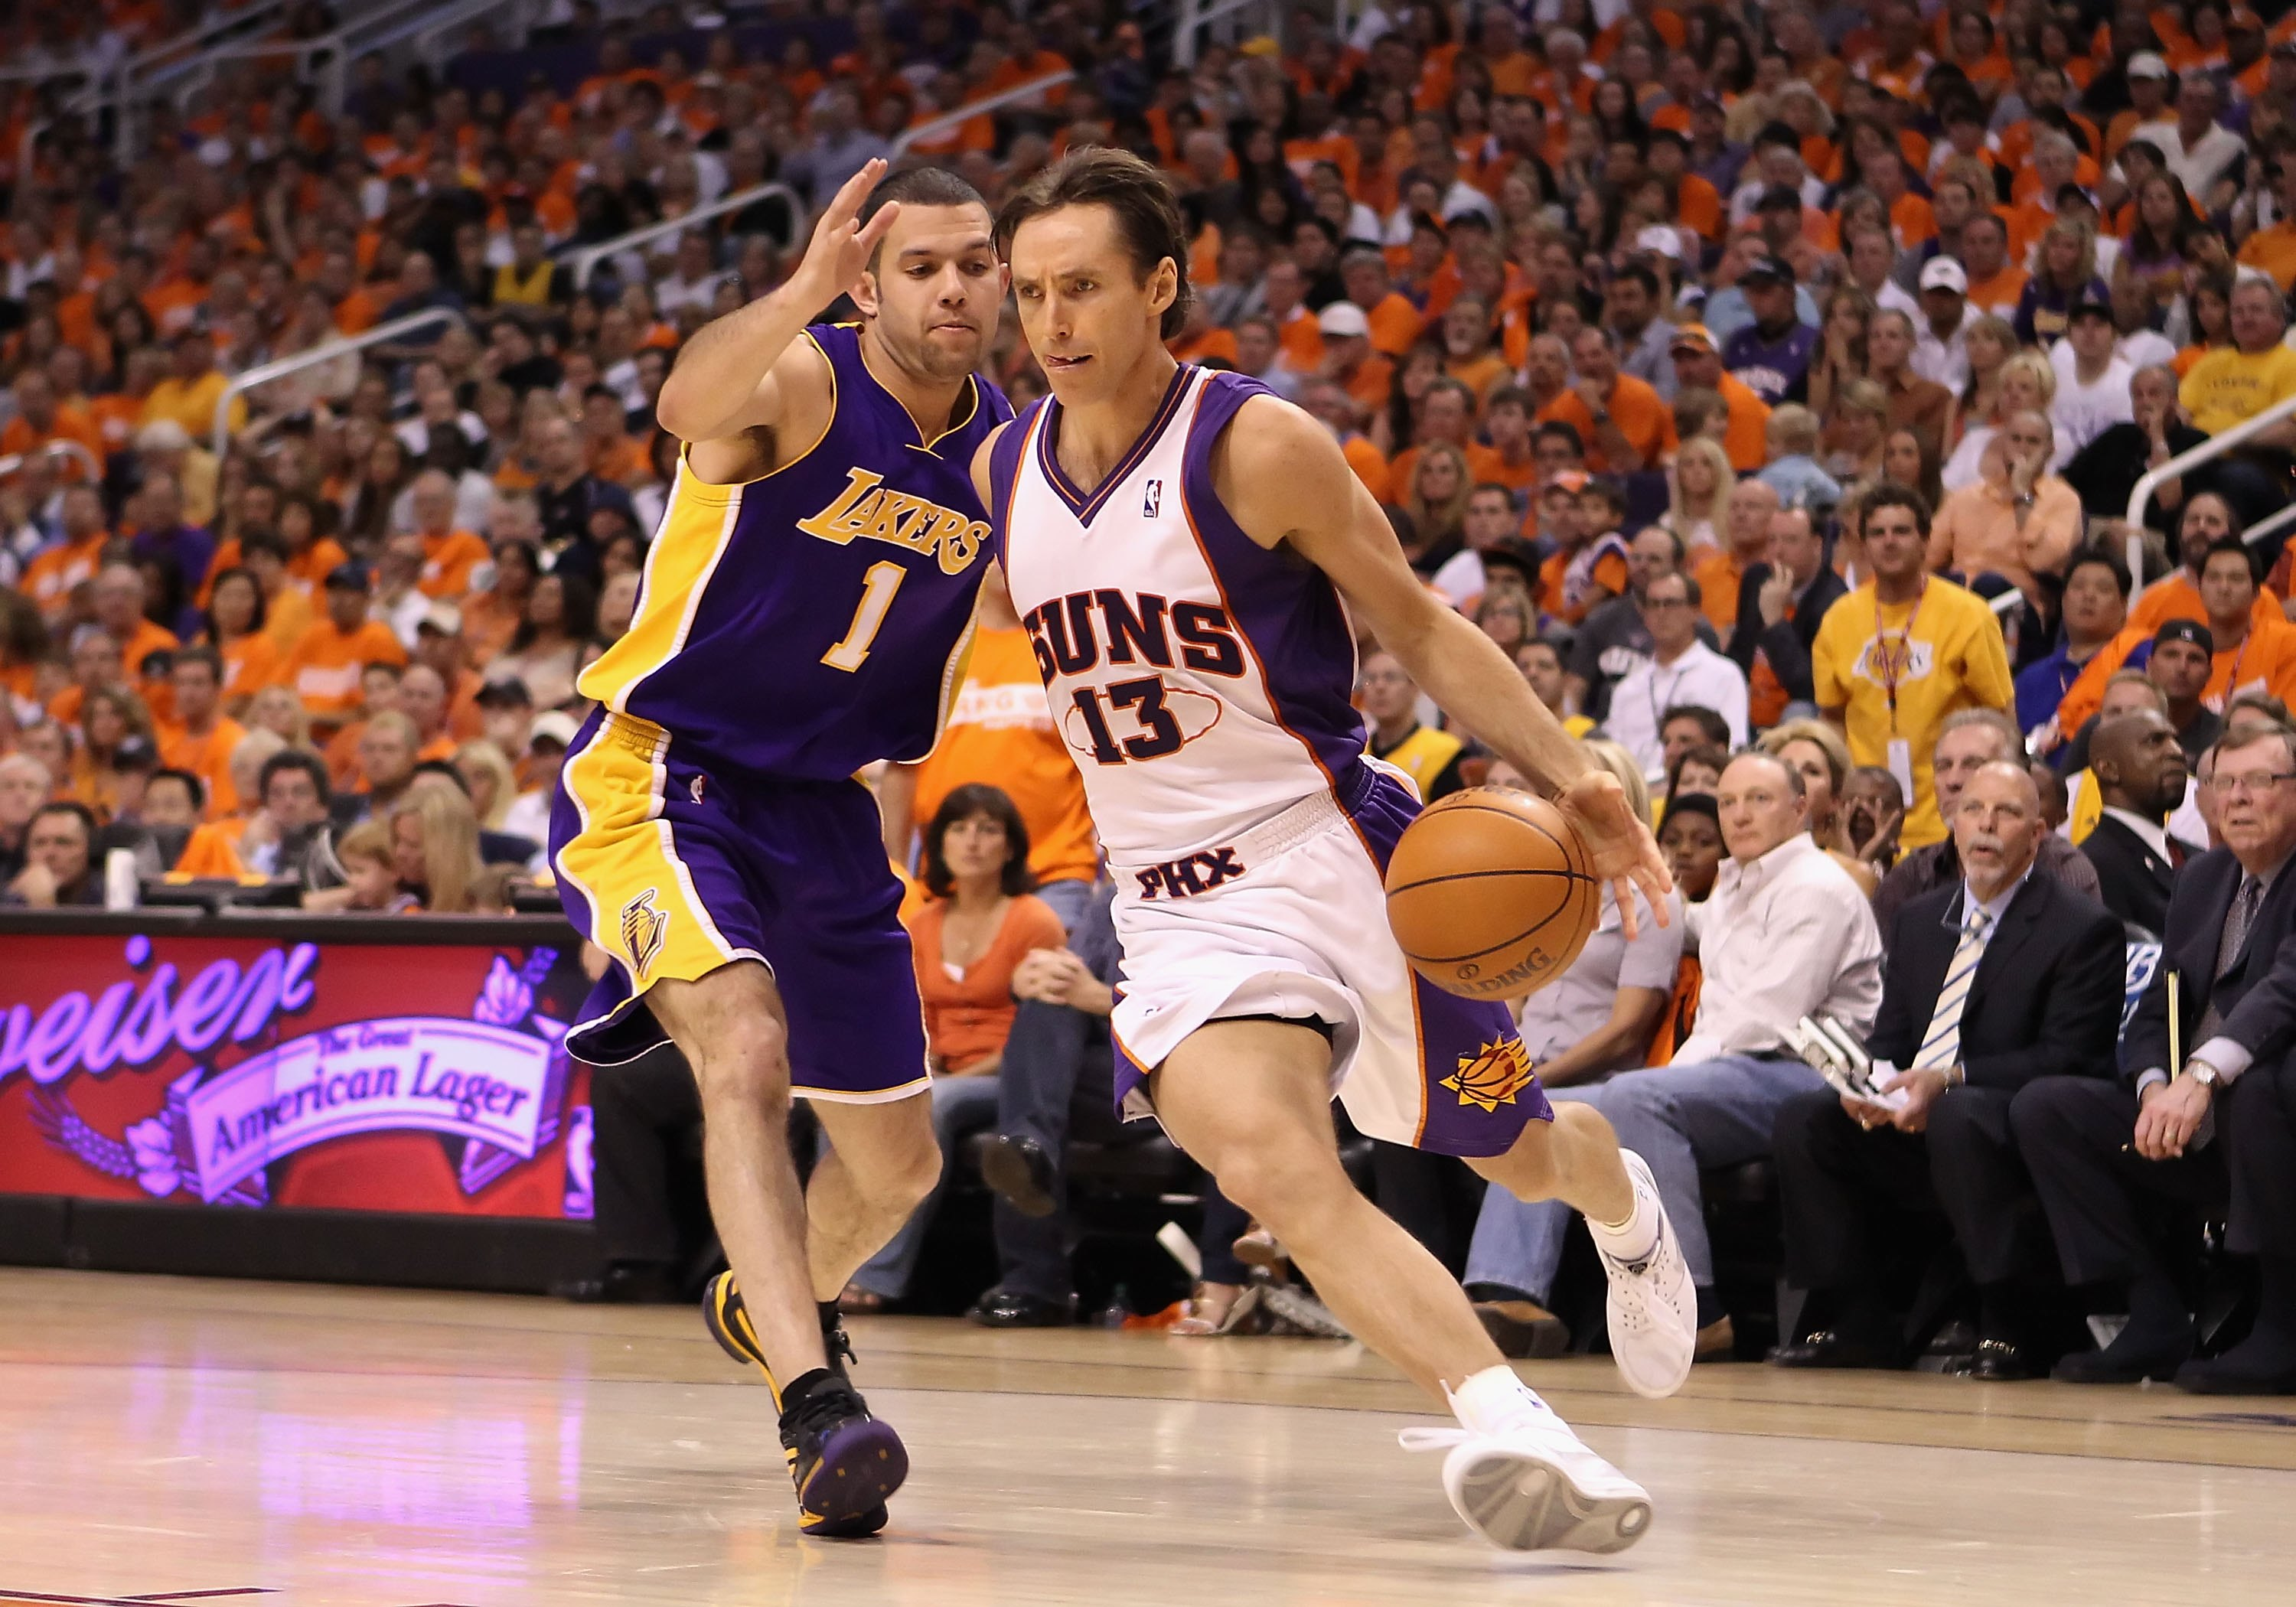 PHOENIX - MAY 23:  Steve Nash #13 of the Phoenix Suns handles the ball under pressure from Jordan Farmar #1 of the Los Angeles Lakers during Game Three of the Western Conference finals of the 2010 NBA Playoffs at US Airways Center on May 23, 2010 in Phoen